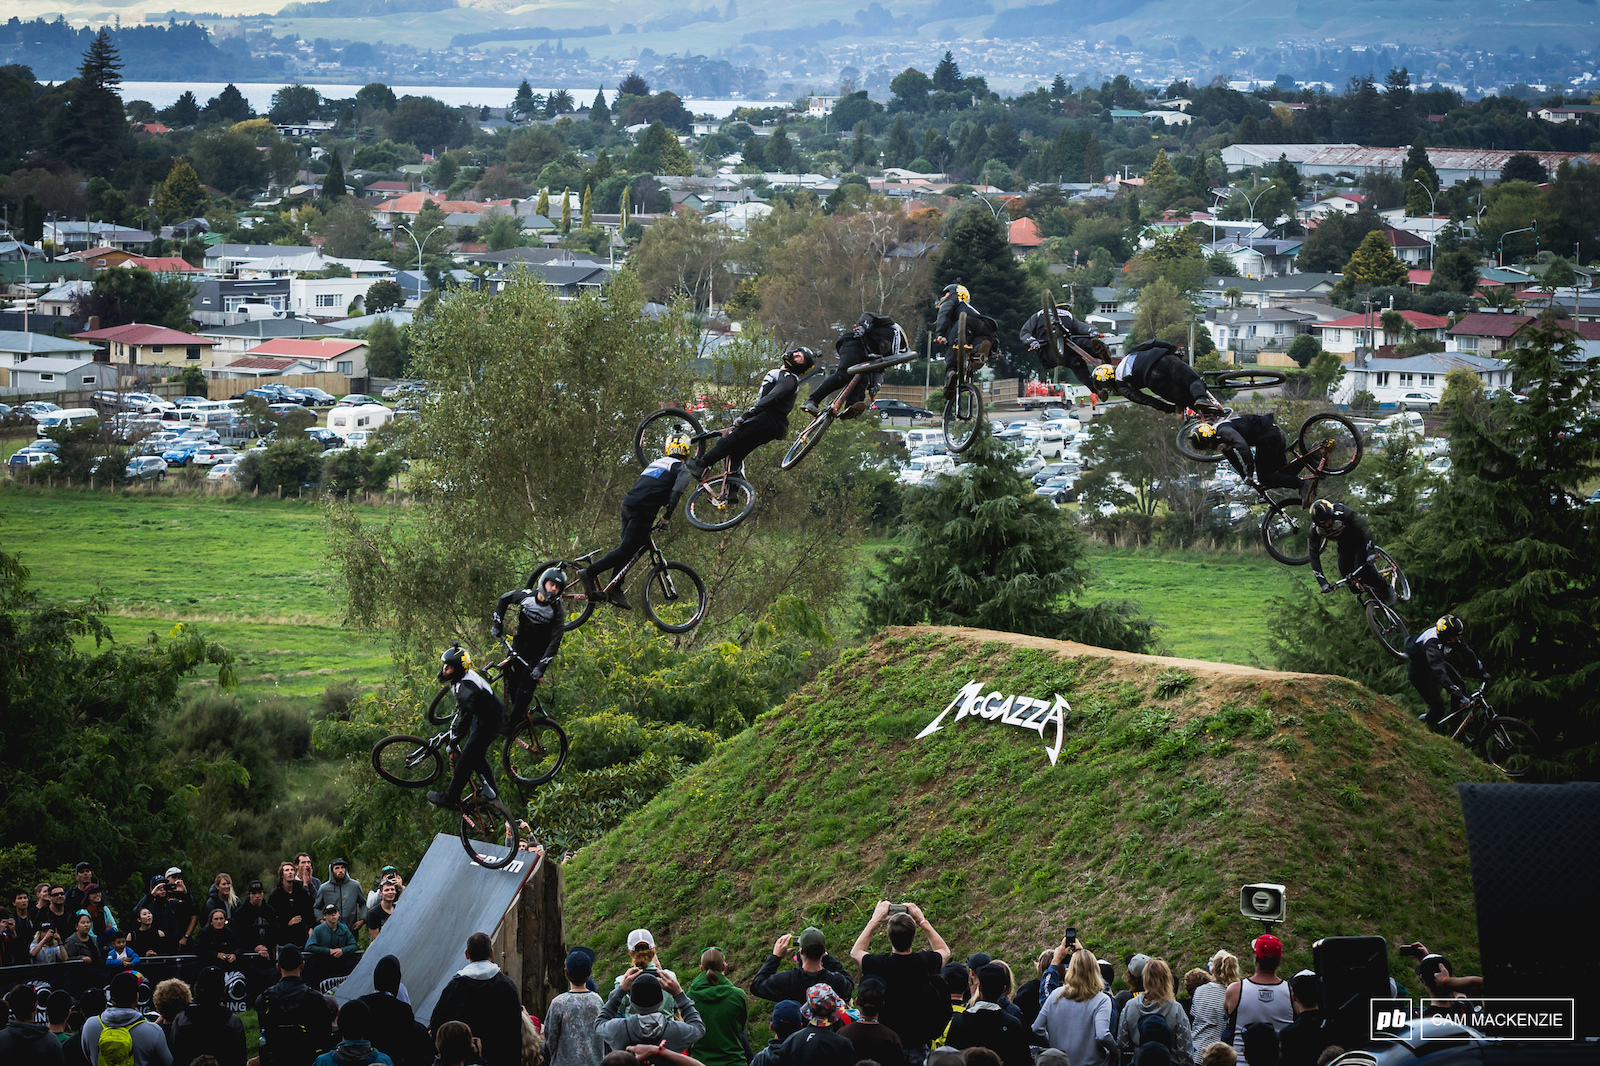 Nicolia Rogatkin winding up his 1440 spin during the last run of Crankworx Rotorua Slopestyle 2018